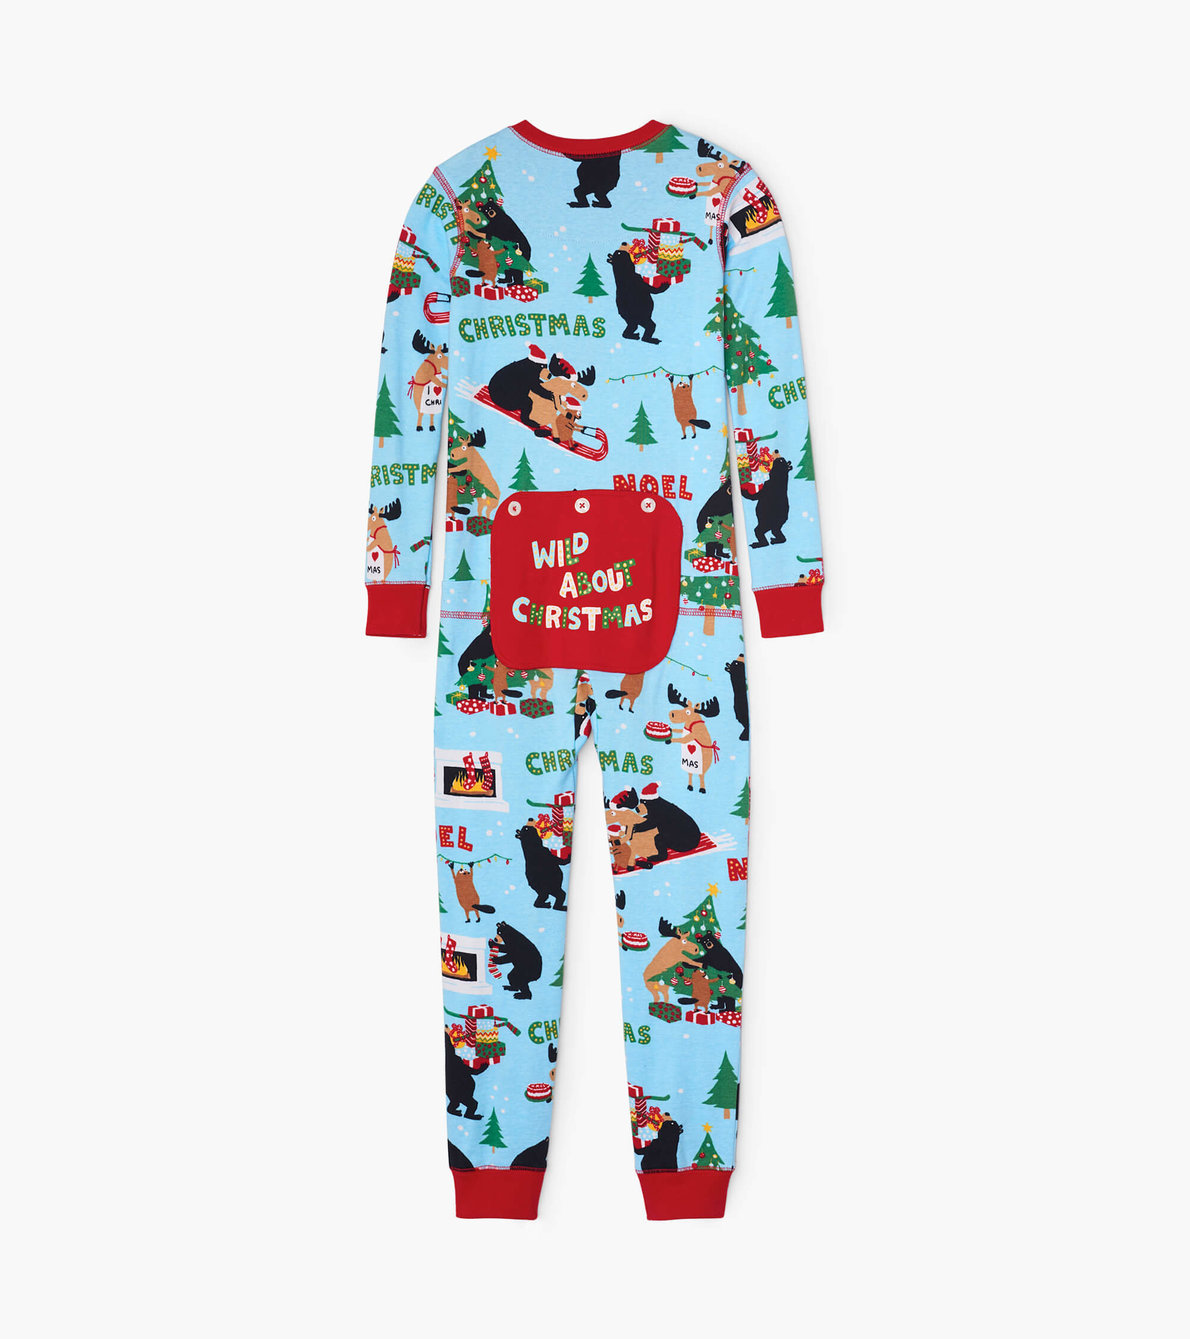 View larger image of Wild About Christmas Kids Union Suit